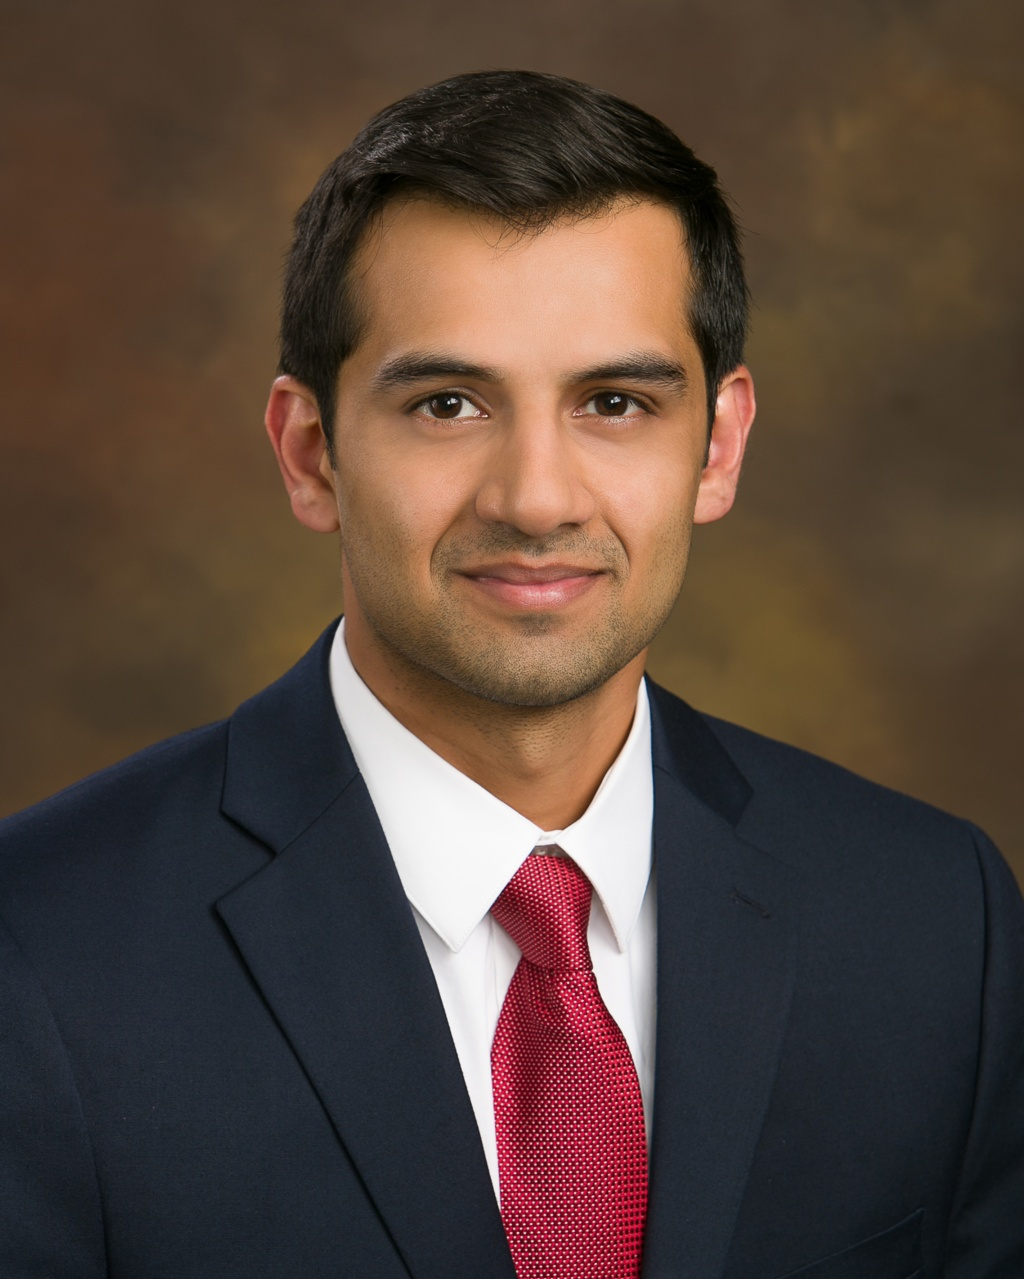 Rush Health Systems Welcomes New Interventional Cardiologist - Rush